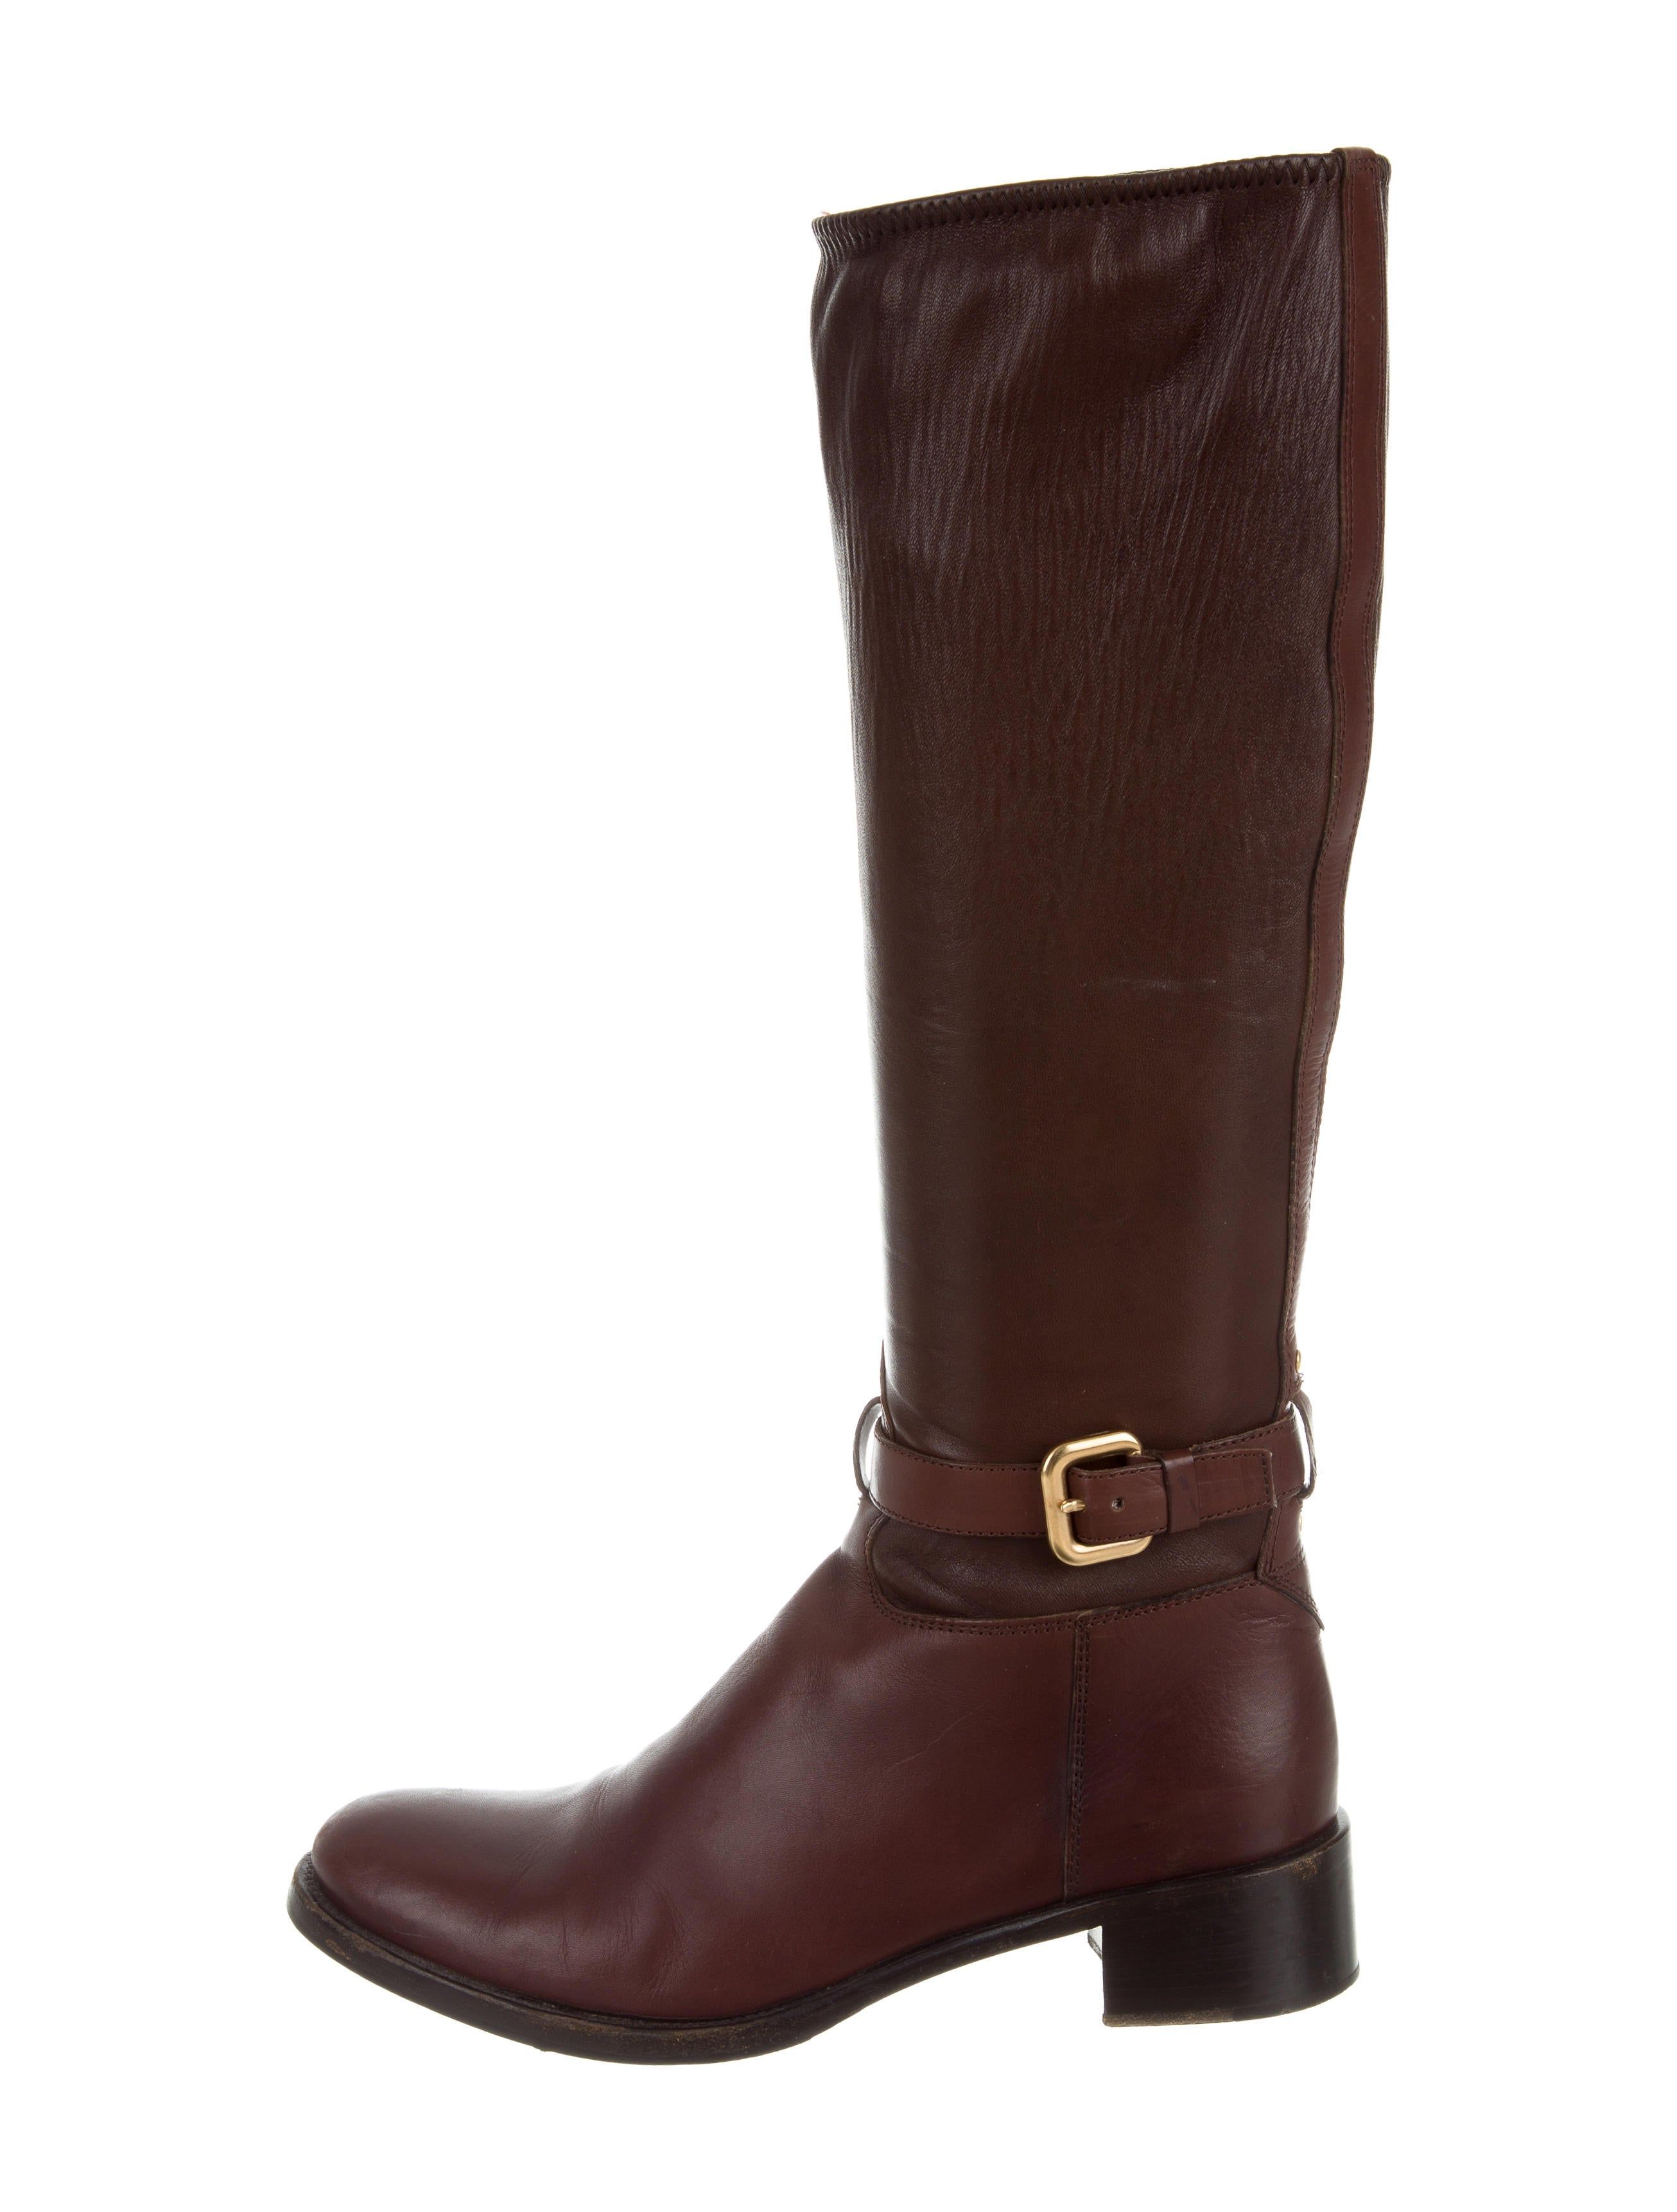 prada leather knee high boots shoes pra151544 the